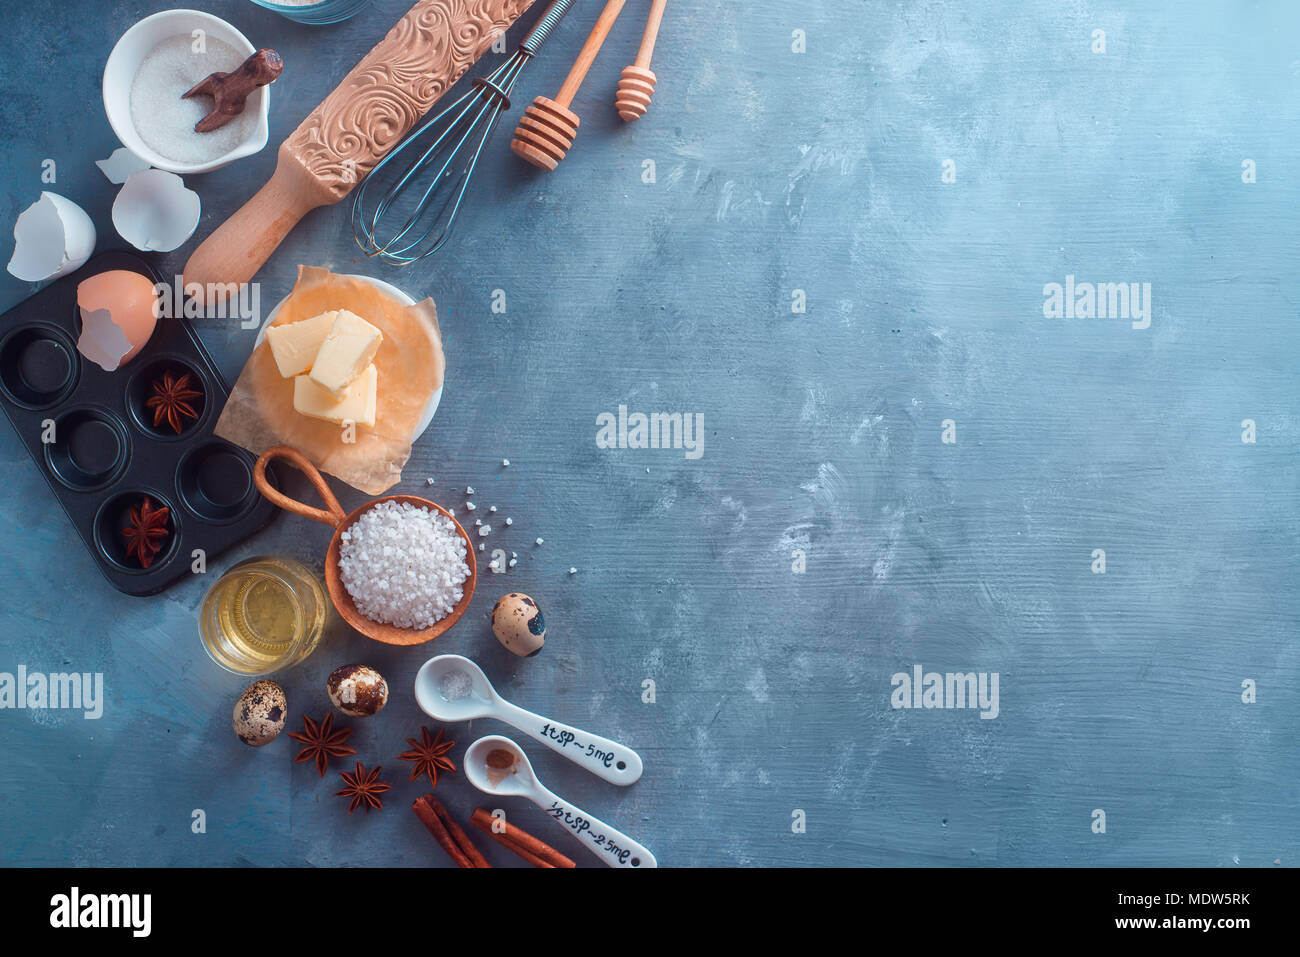 Cooking concept with baking tools and ingredients. Rolling pin, honey spoons, muffin tin, whisk, flour, butter on a concrete background, header with copy space - Stock Image